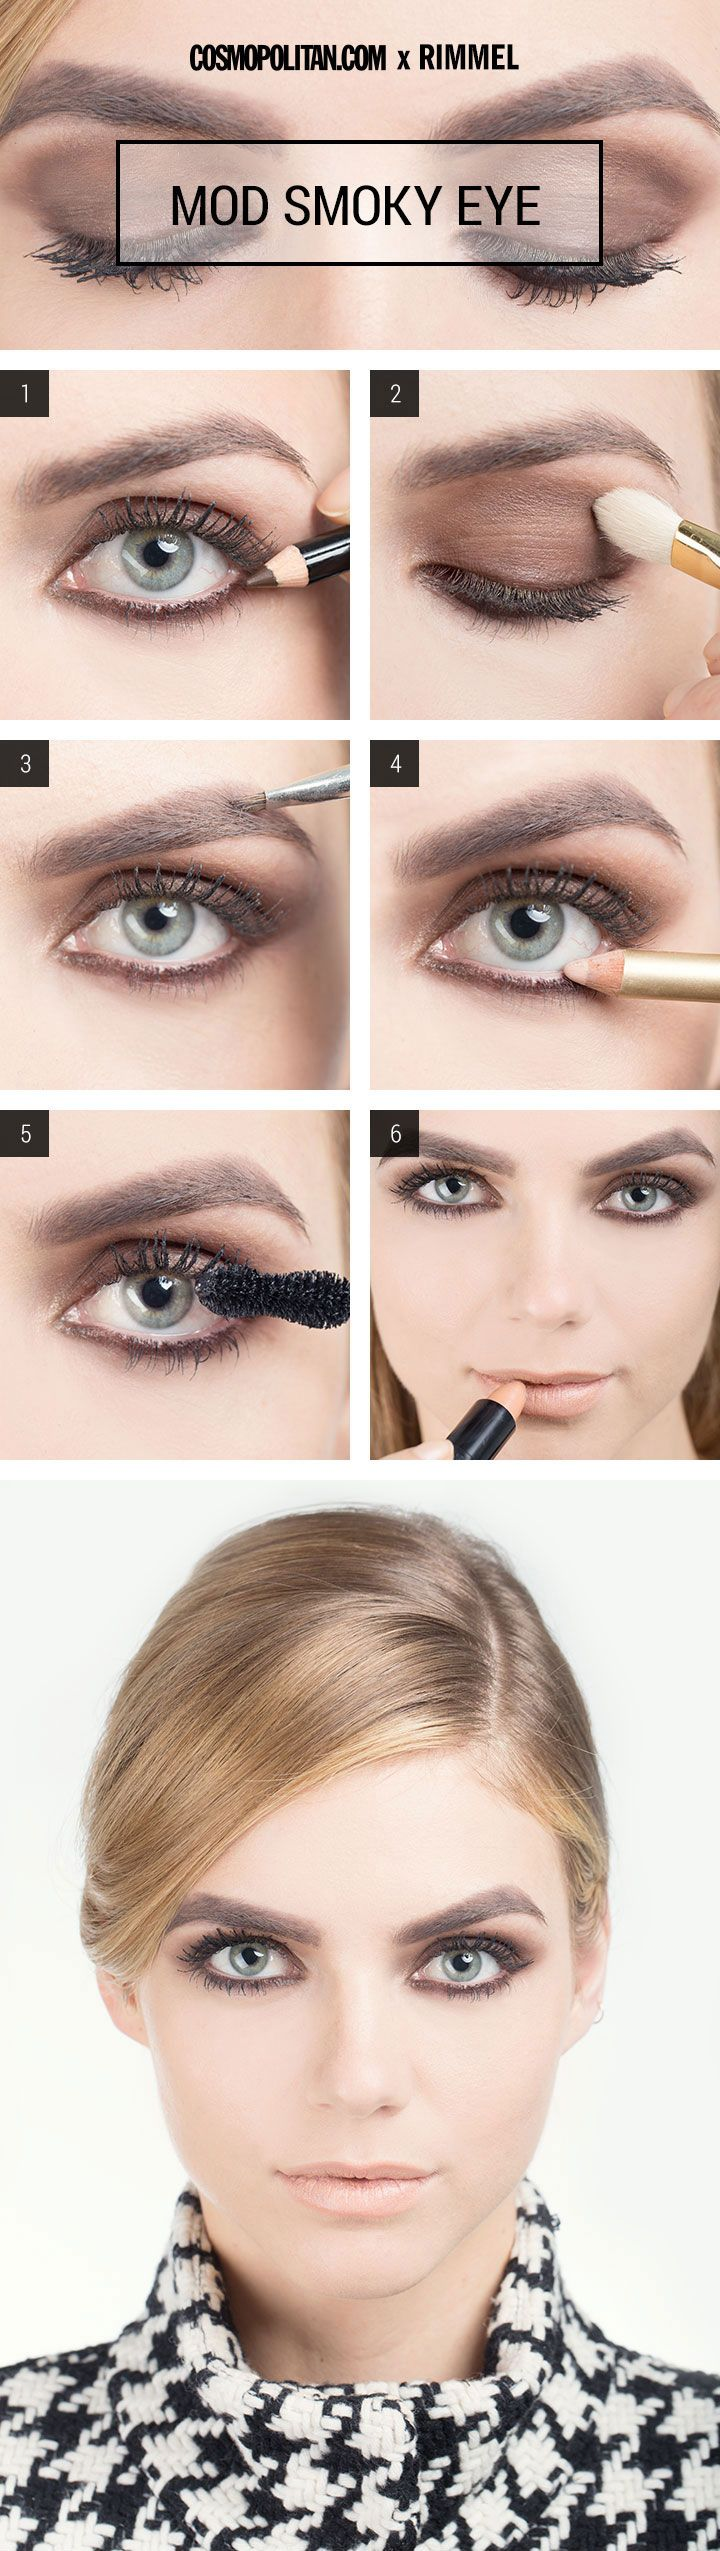 Mod Smoky Eye Makeup Tutorial